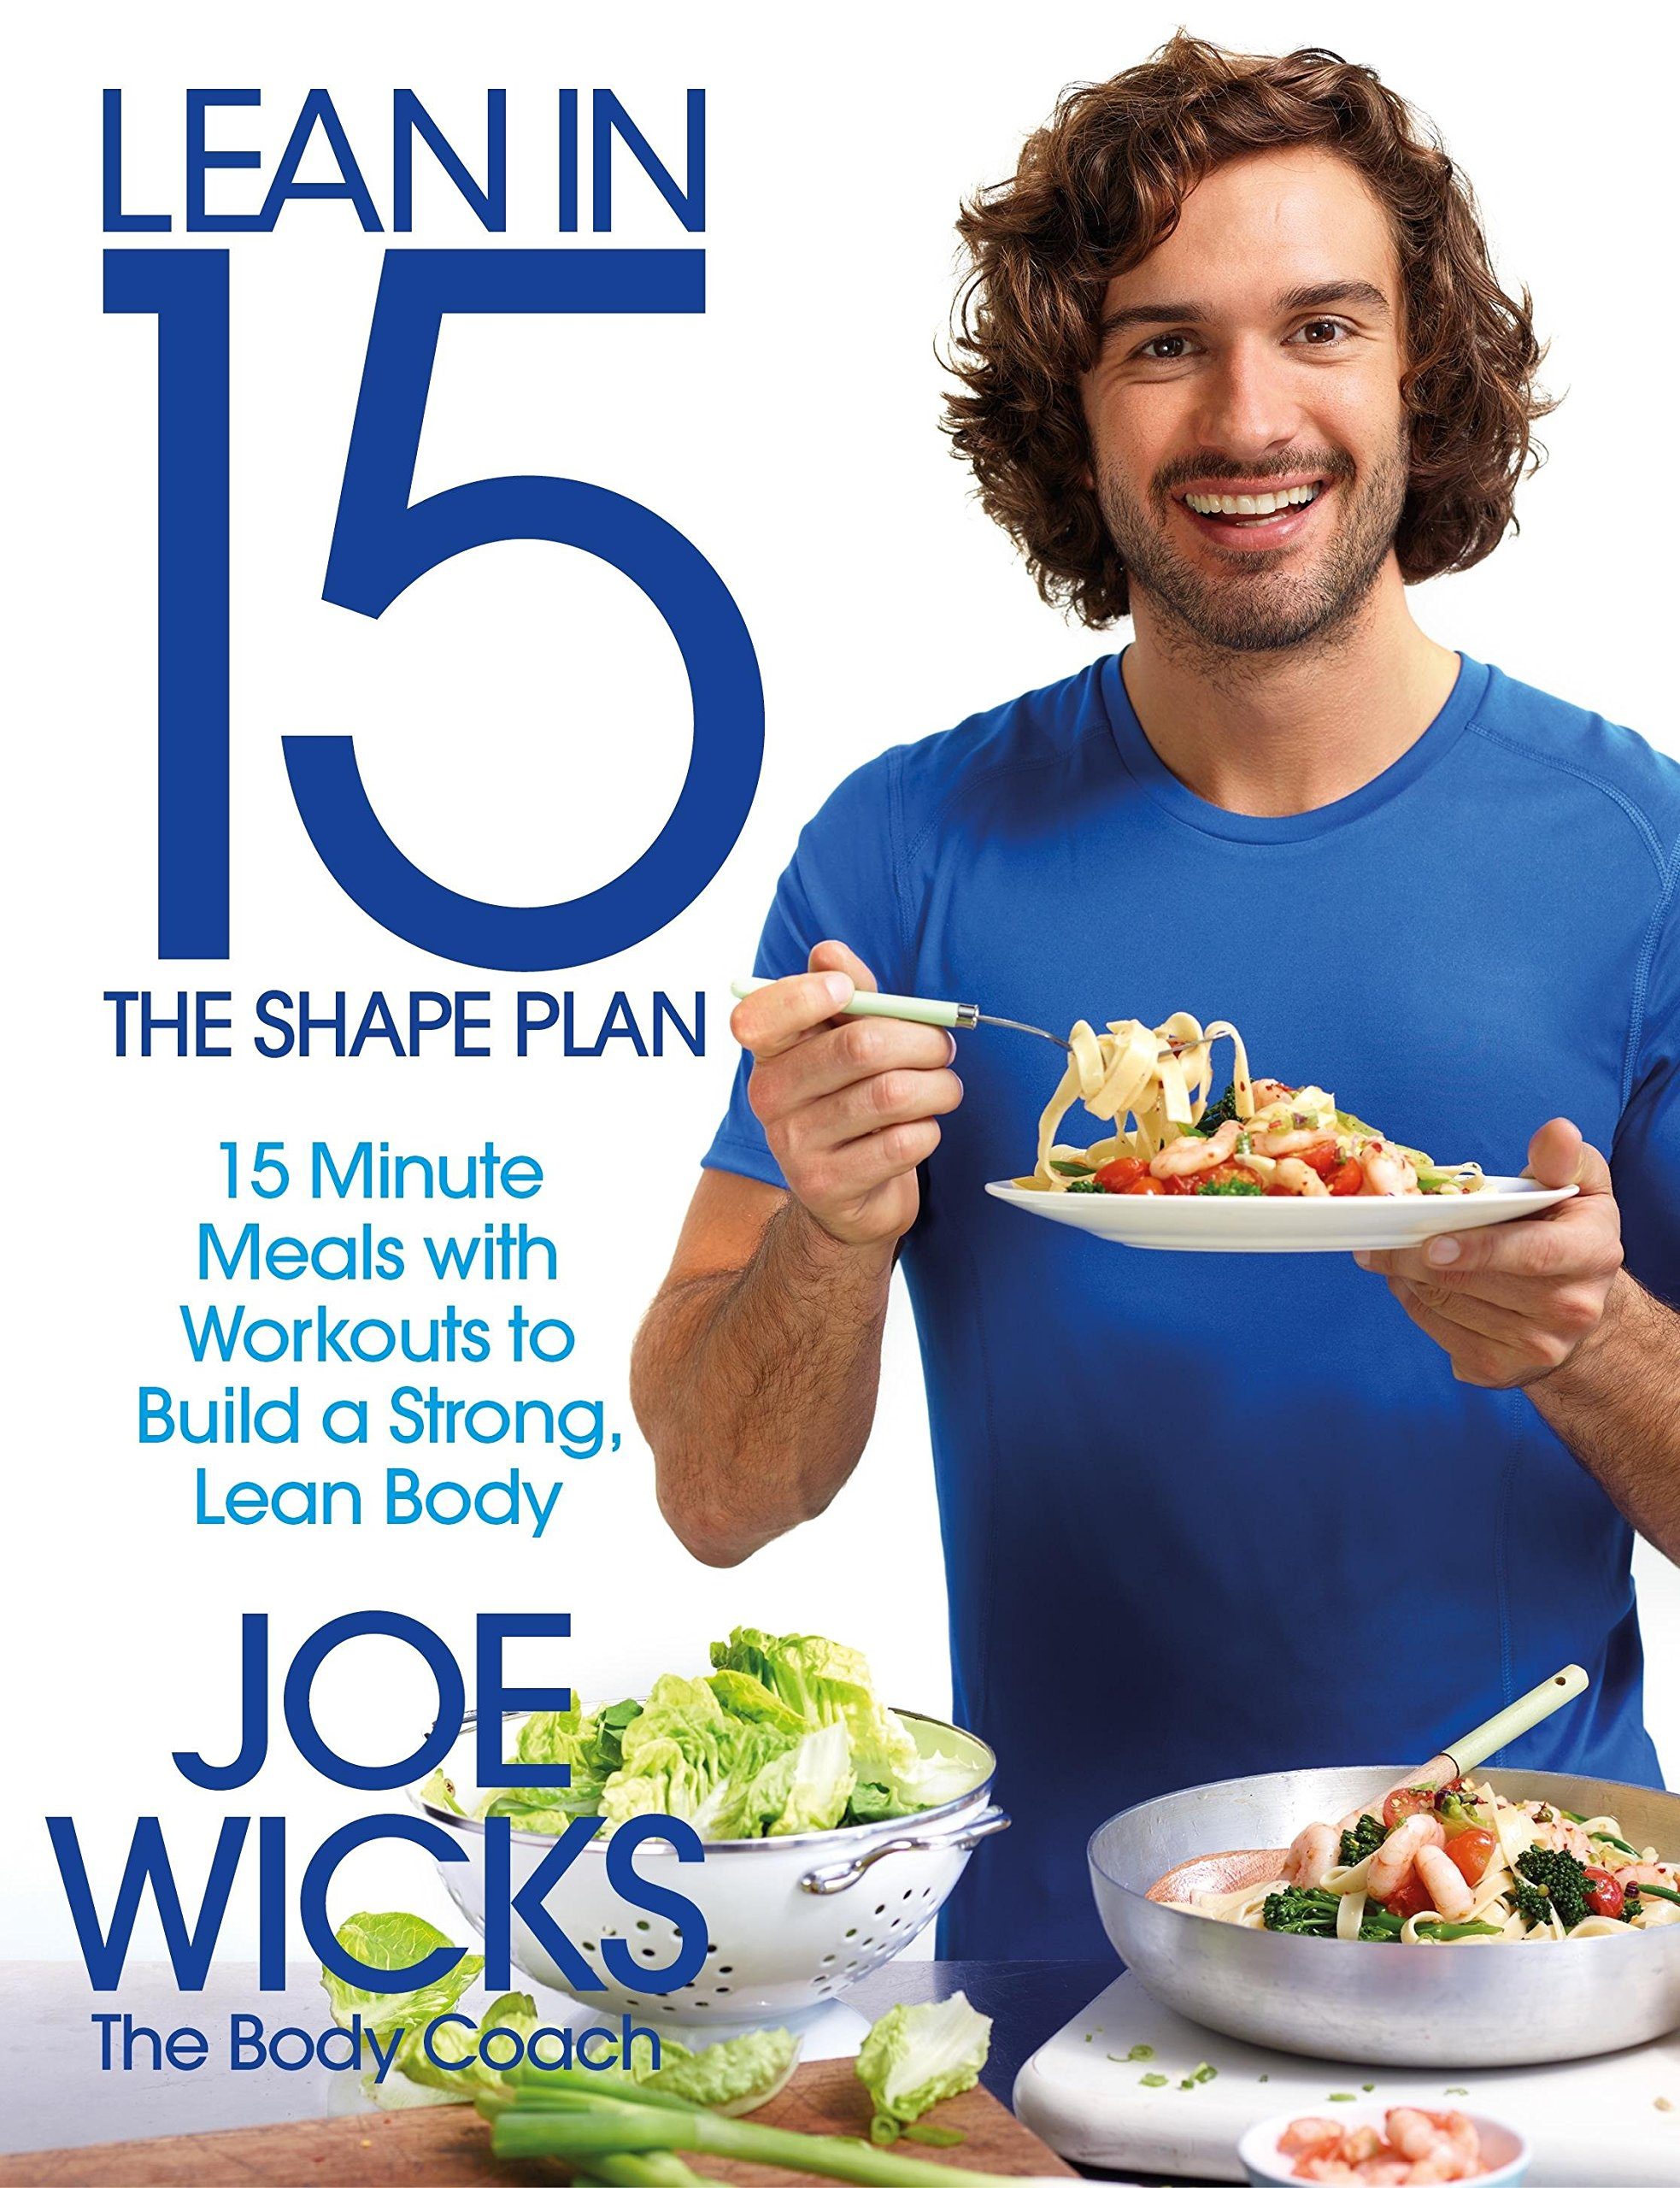 Lean in 15 - The Shape Plan: 15 Minute Meals with Workouts to Build a Strong, Lean Body import block qfn20 burn ic mlp20 uni 20qn50s14040 b to test